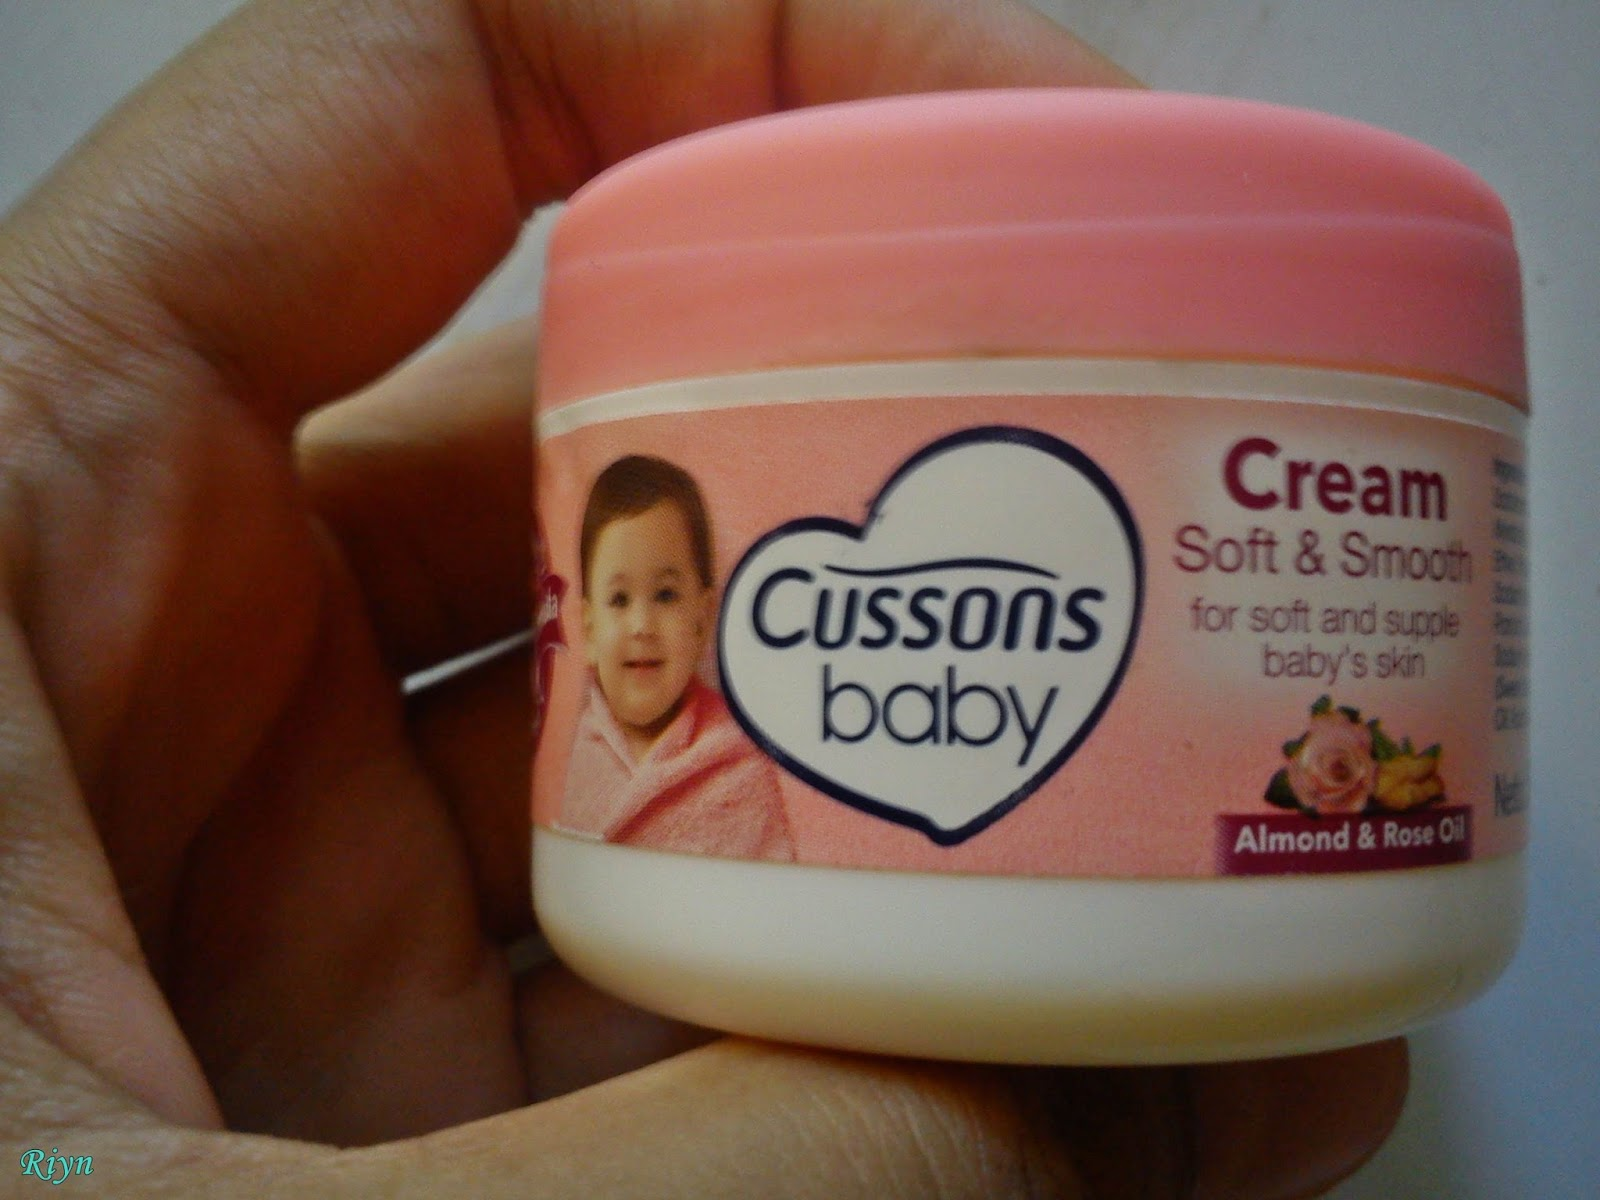 Riyns Virtual Home REVIEW Cussons Baby Cream Sebagai